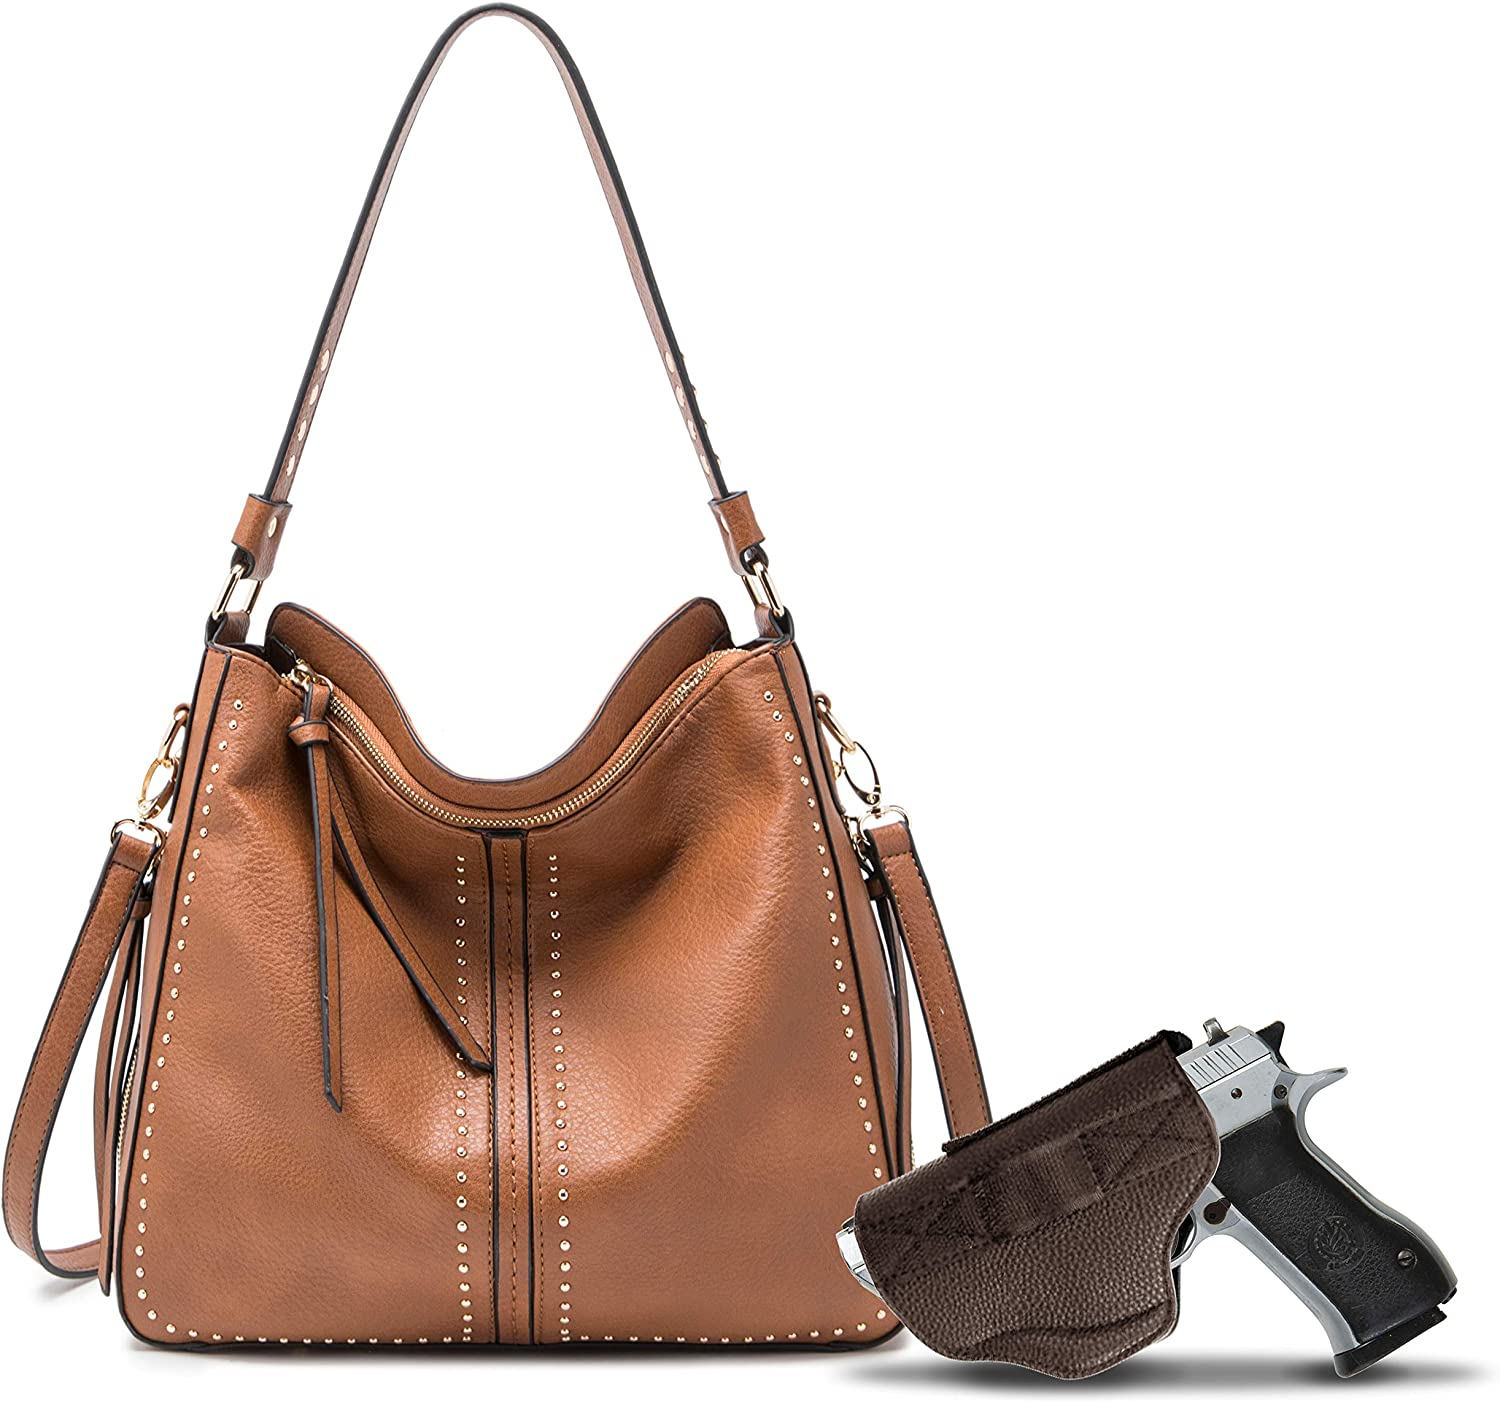 Affordable, durable and spacious, Montana West's large concealed carry hobo has everything you need to keep your firearm and valuables safe